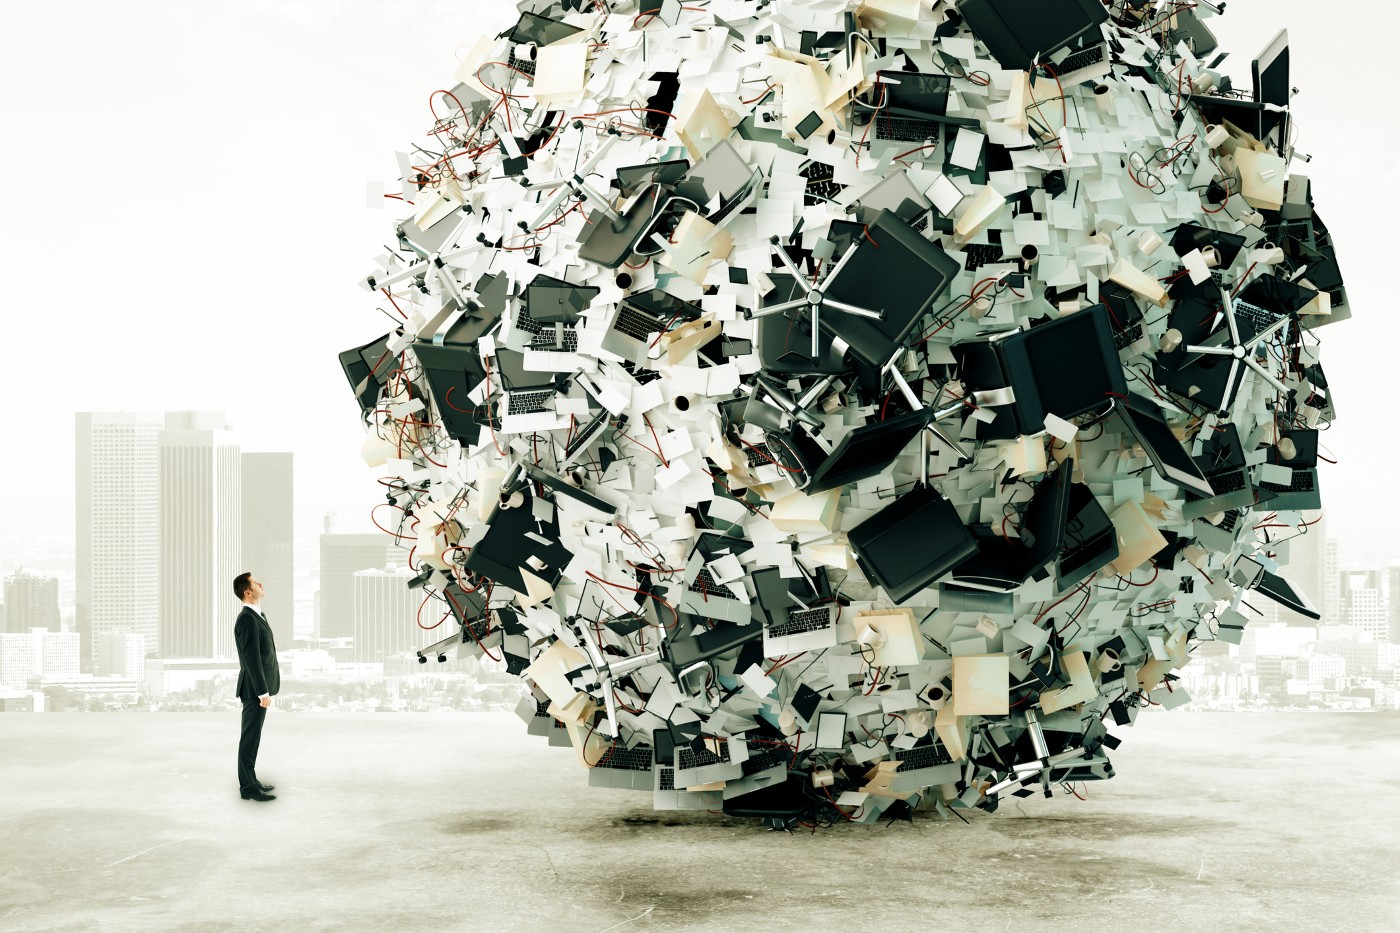 https://tickertapecdn.tdameritrade.com/assets/images/pages/md/Businessman looking up at giant ball of office furniture and supplies: Targeting conglomerate stocks